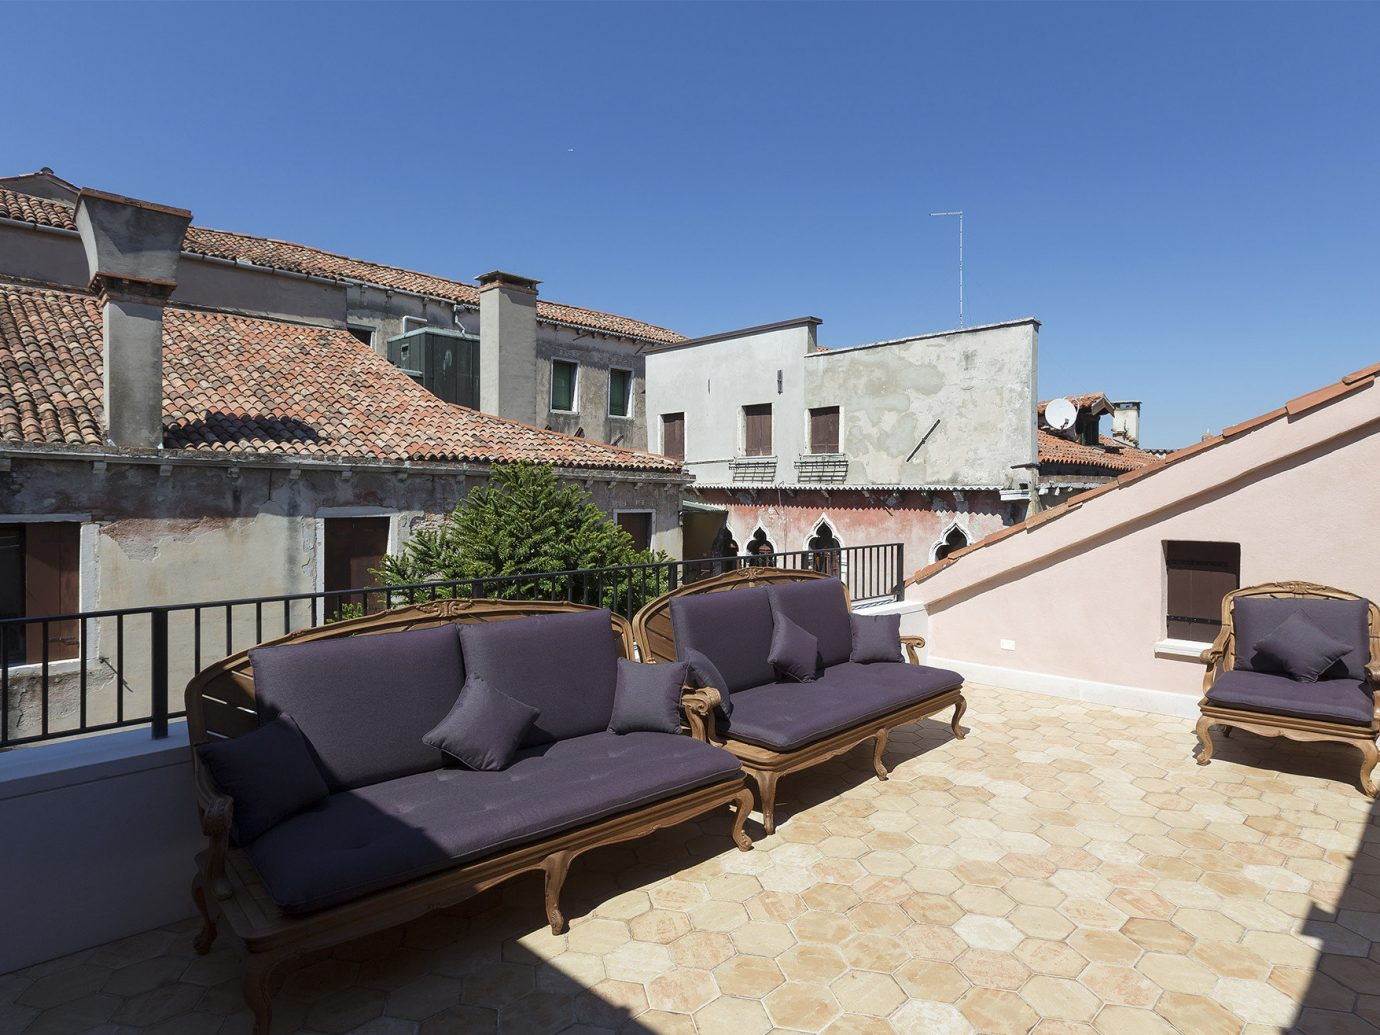 Hotels Italy Luxury Travel Venice property roof apartment real estate house Balcony residential area estate building window penthouse apartment outdoor structure daylighting angle Villa facade sky